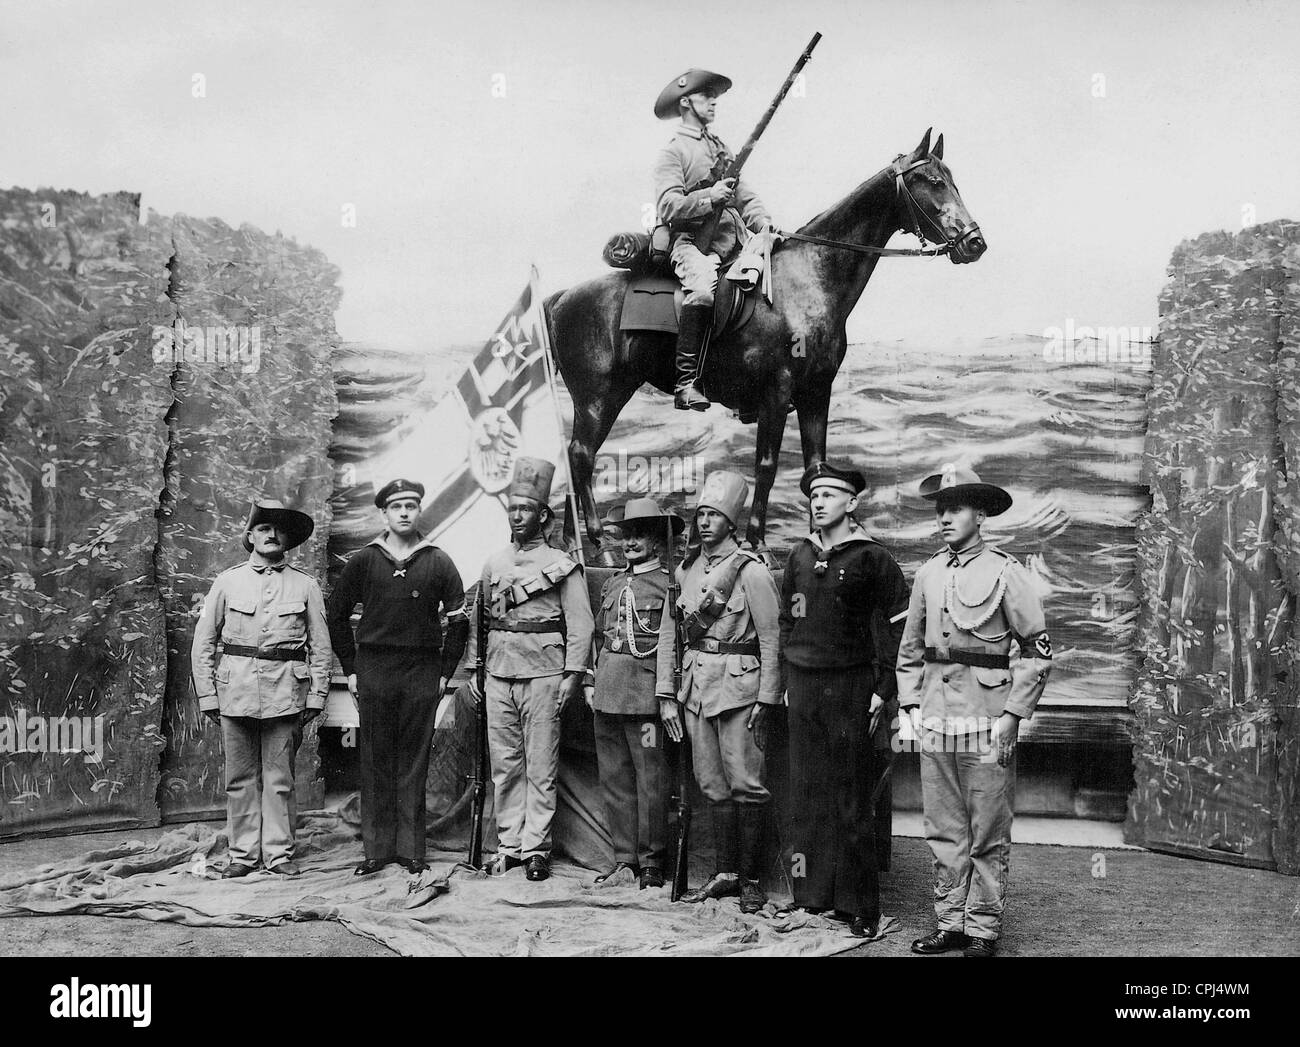 Tableau of German colonial soldiers, 1936 - Stock Image